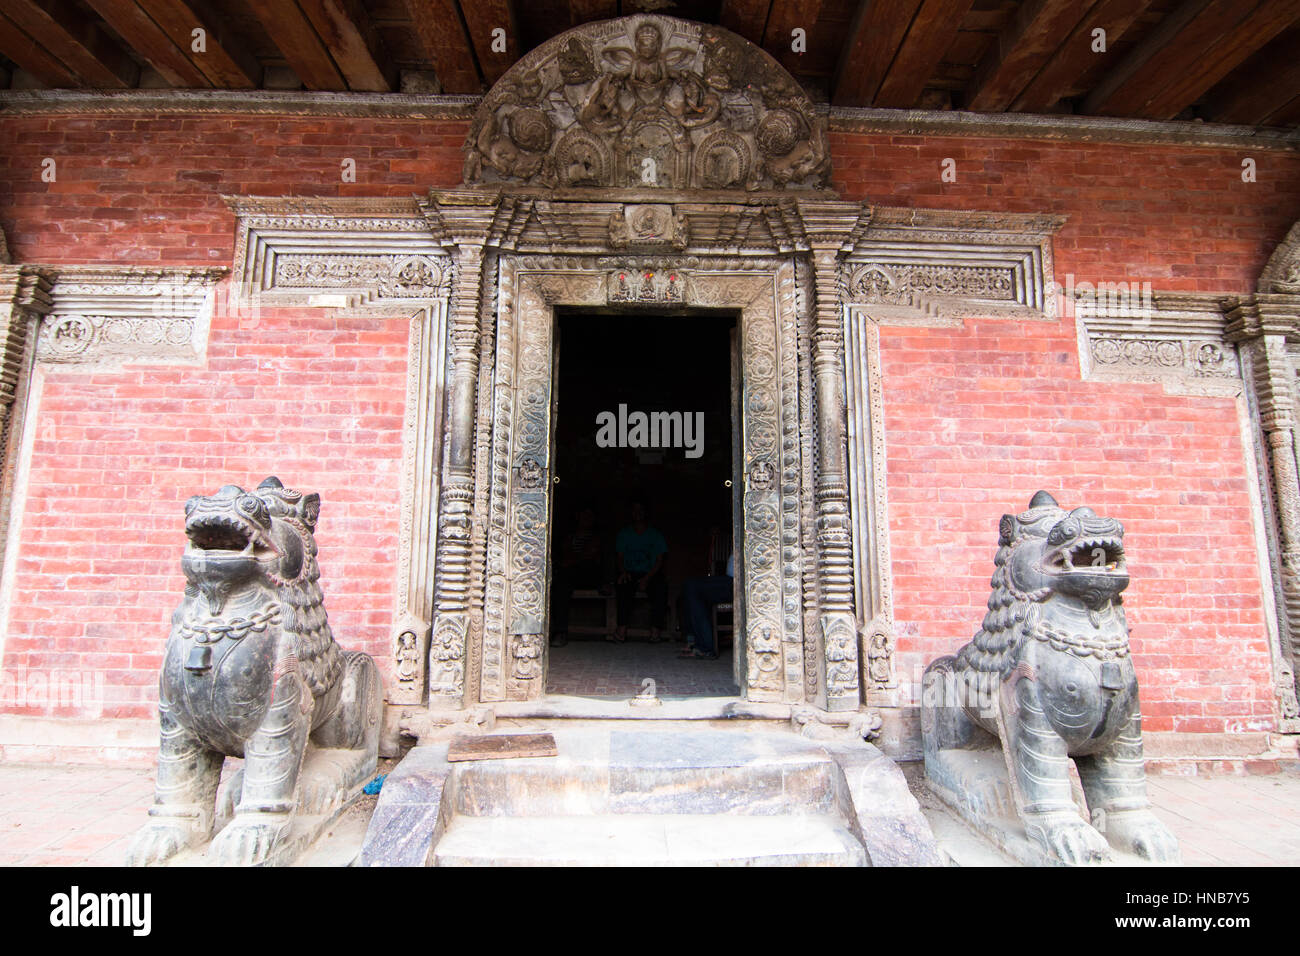 Lions guard the doorway at the entrance of an old building with an intricately carved wooden lintel in Bhaktapur, - Stock Image